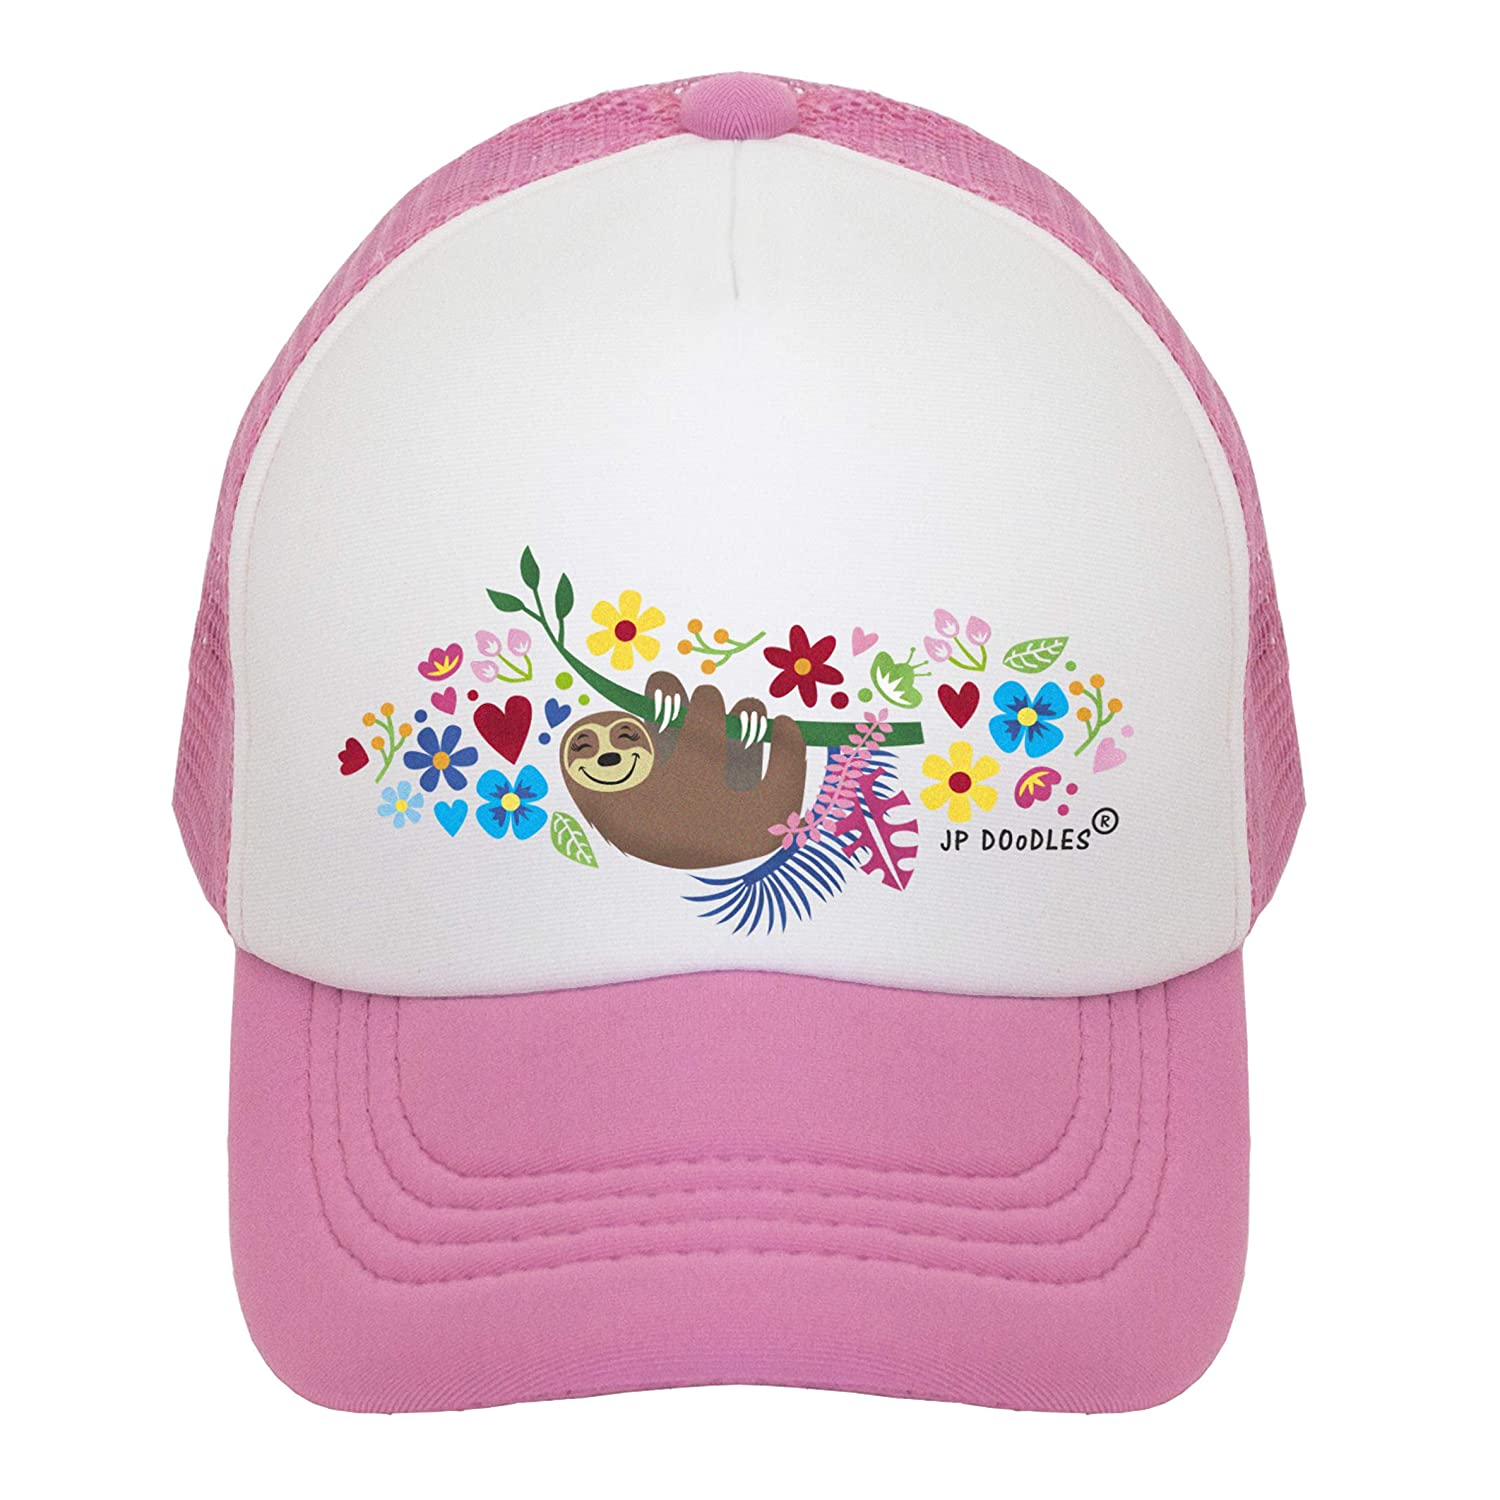 JP DOoDLES Sloth on Kids Trucker Hat and Youth Sizes. Kids Baseball Cap is Available in Baby Toddler